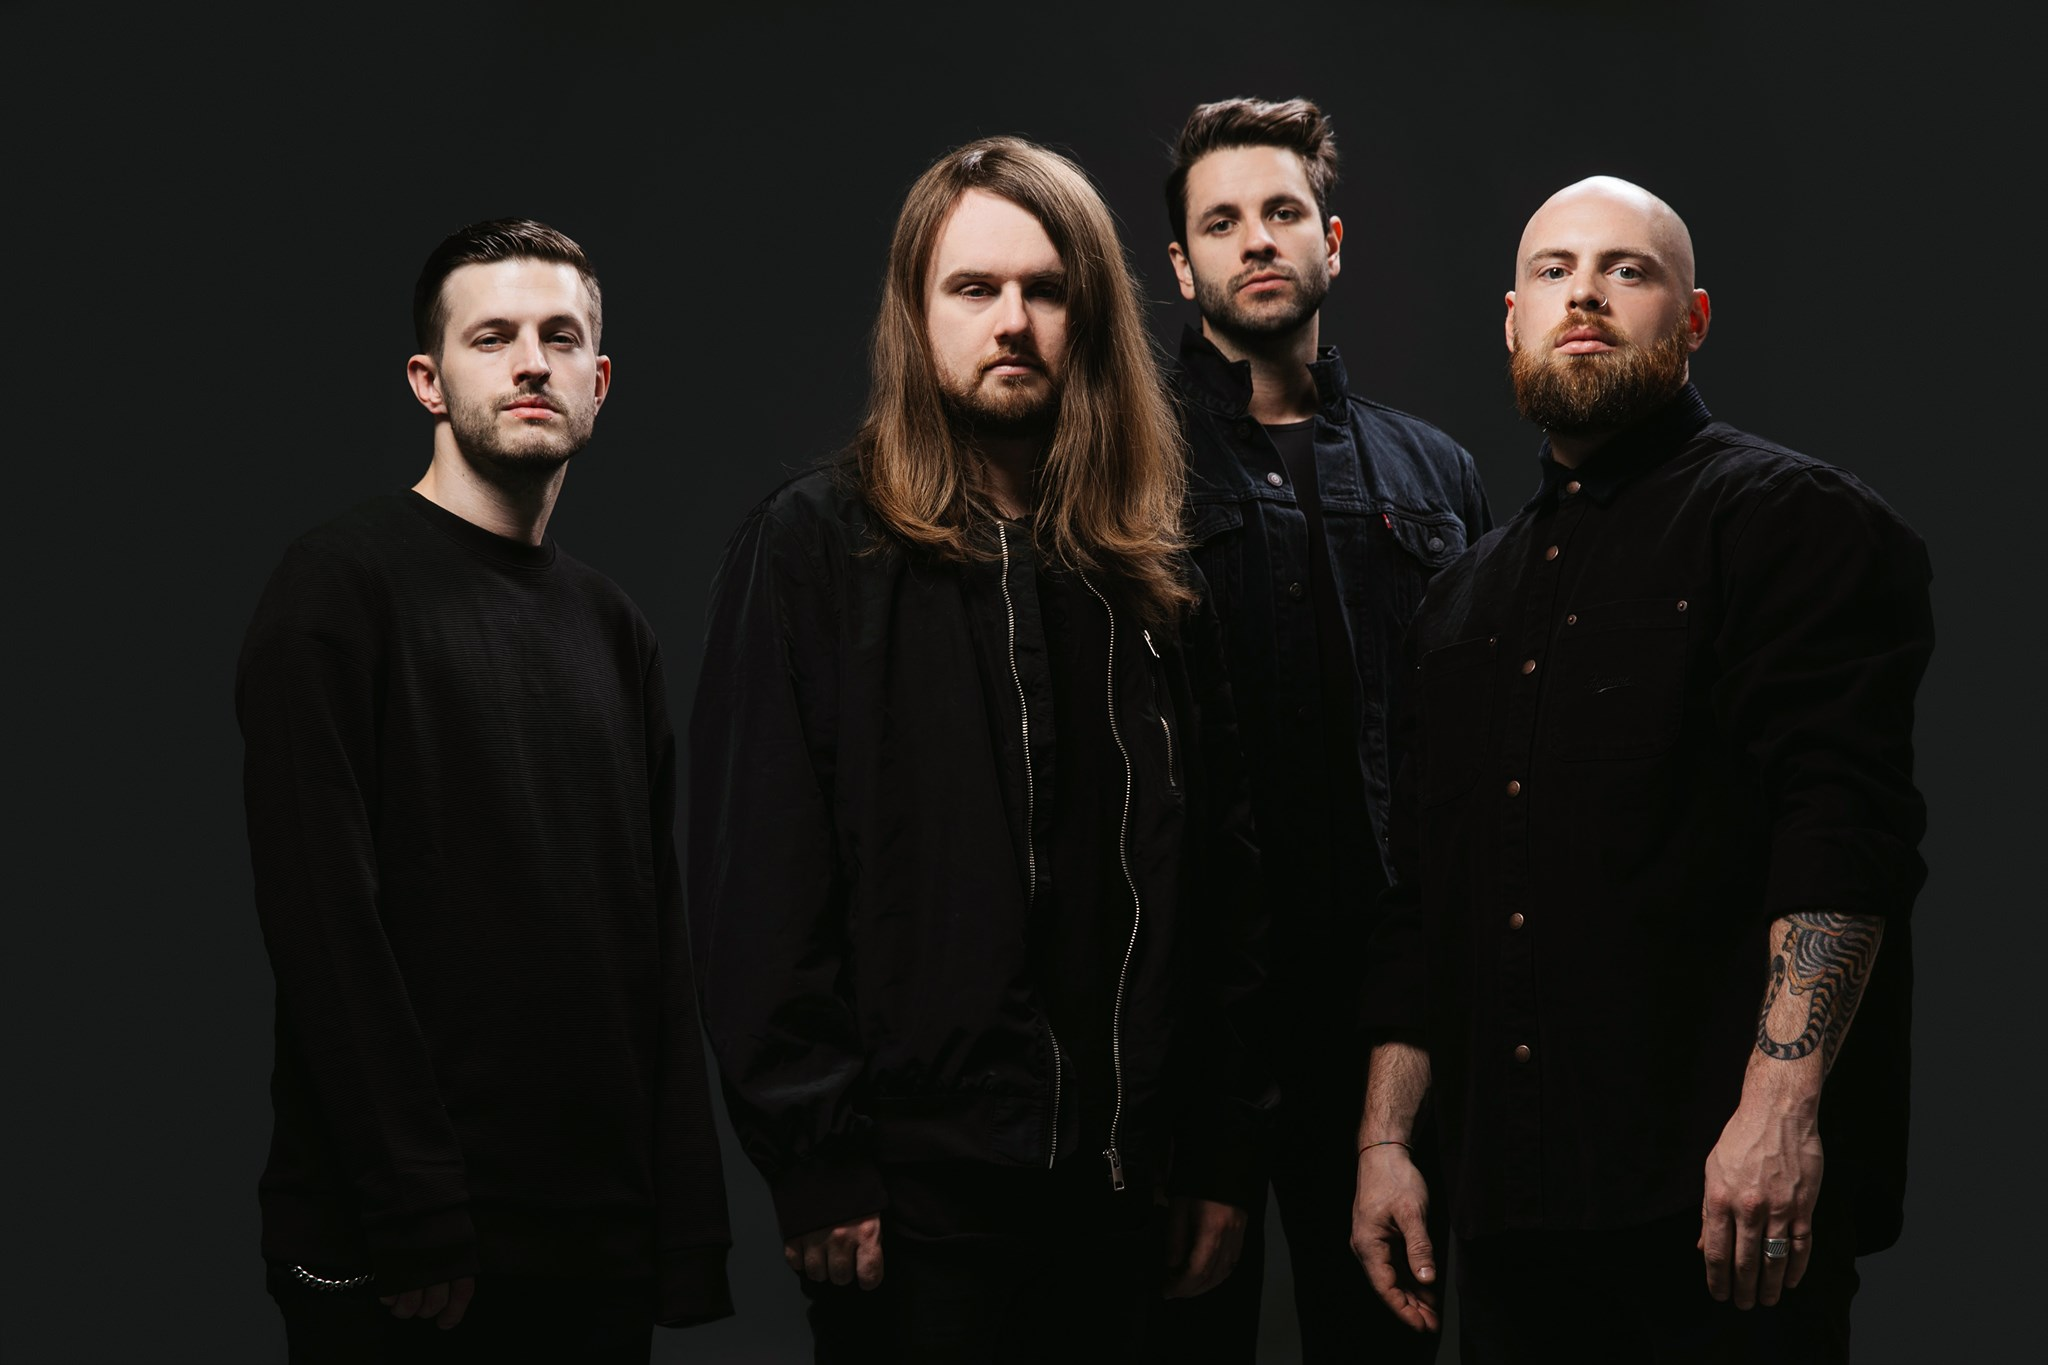 """FIT FOR A KING RELEASE NEW SINGLE """"GOD OF WAR""""; ANNOUNCE NEW ALBUM 'THE PATH'"""